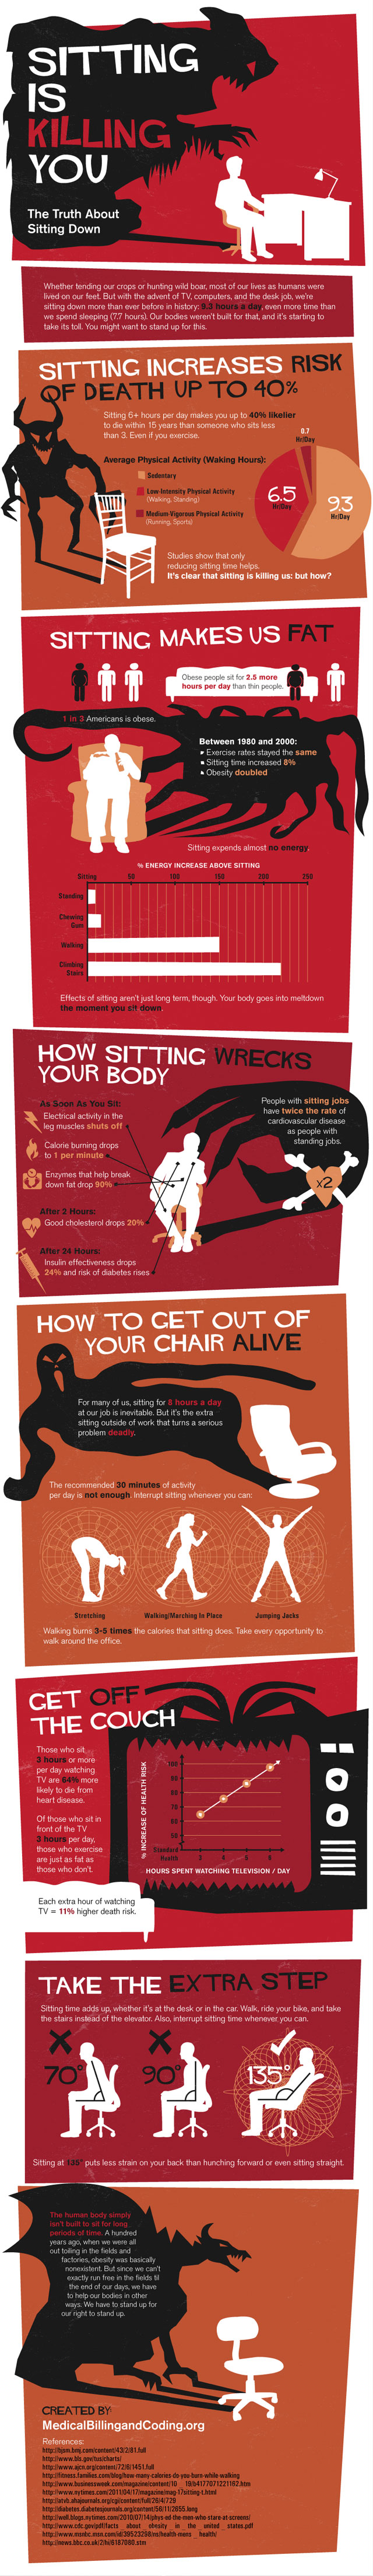 truth-about-sitting-down-infographic